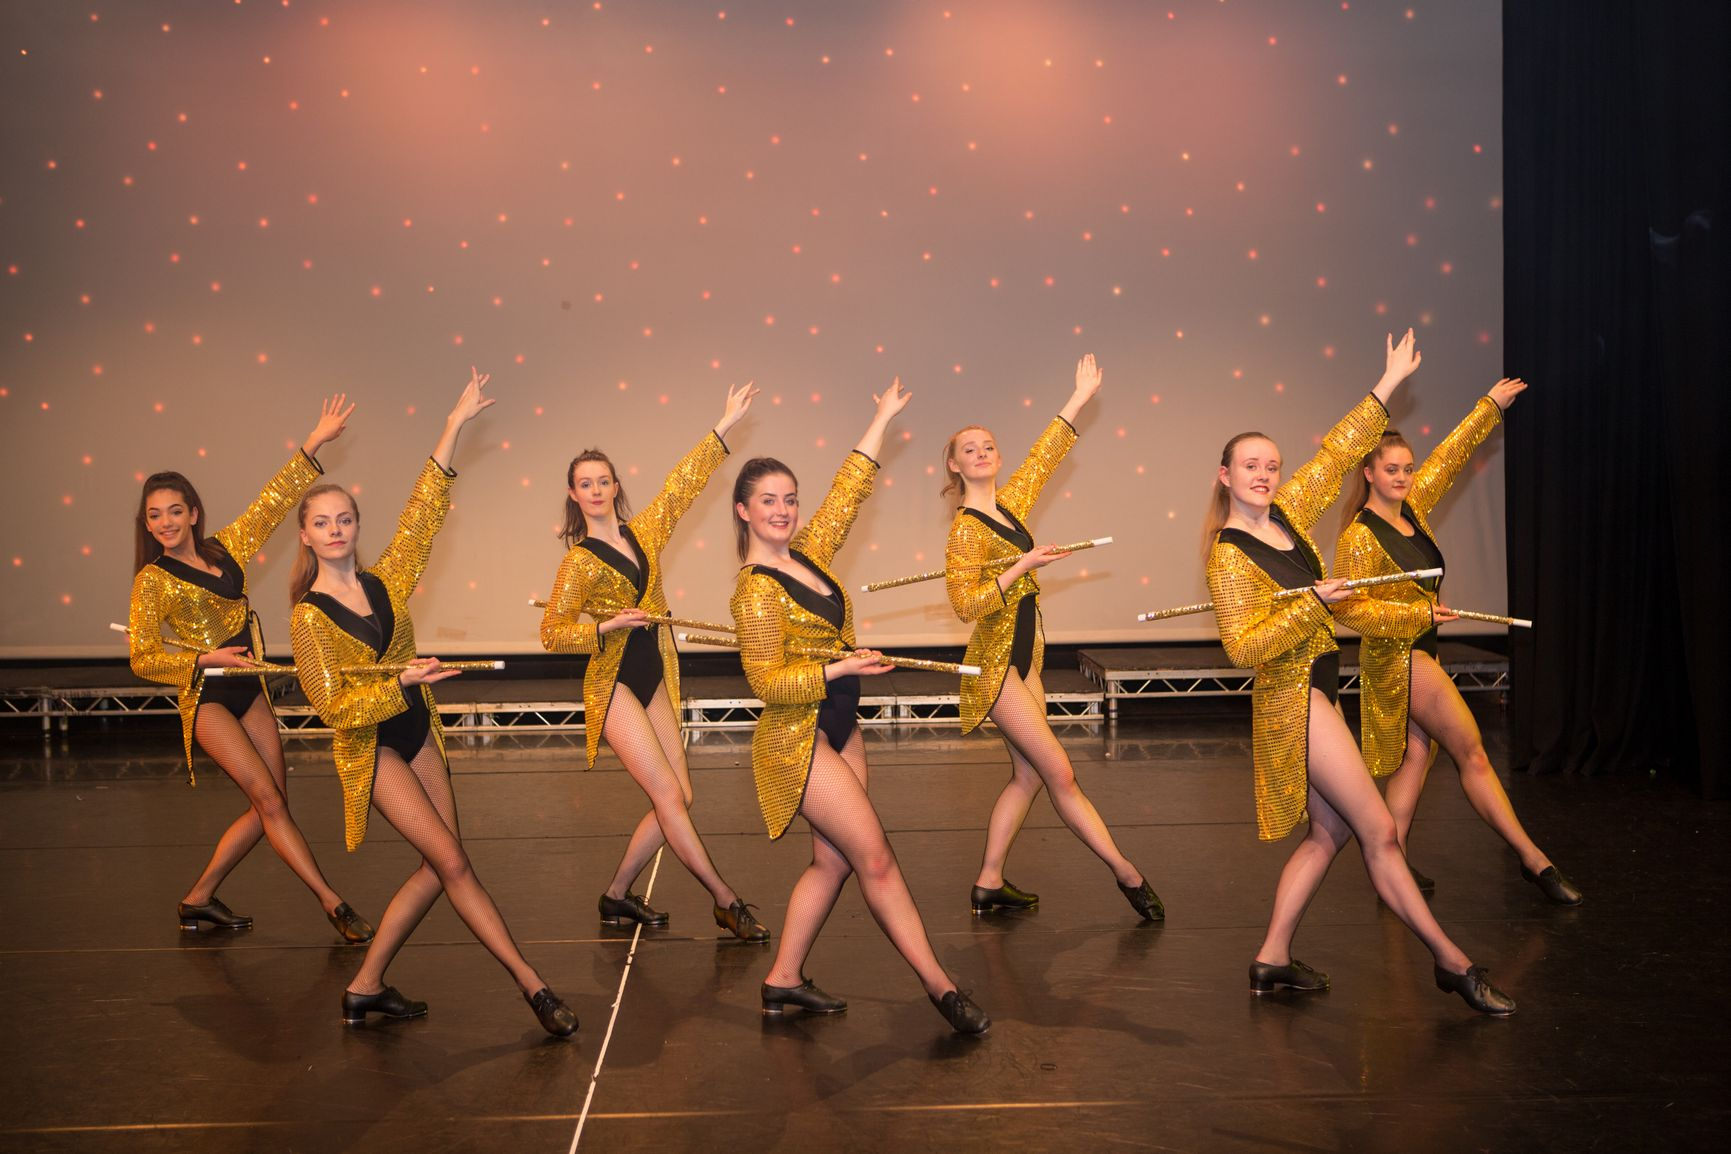 Bedfordshire School of Dance & Drama - 2017 ©Becky Kerr Photography